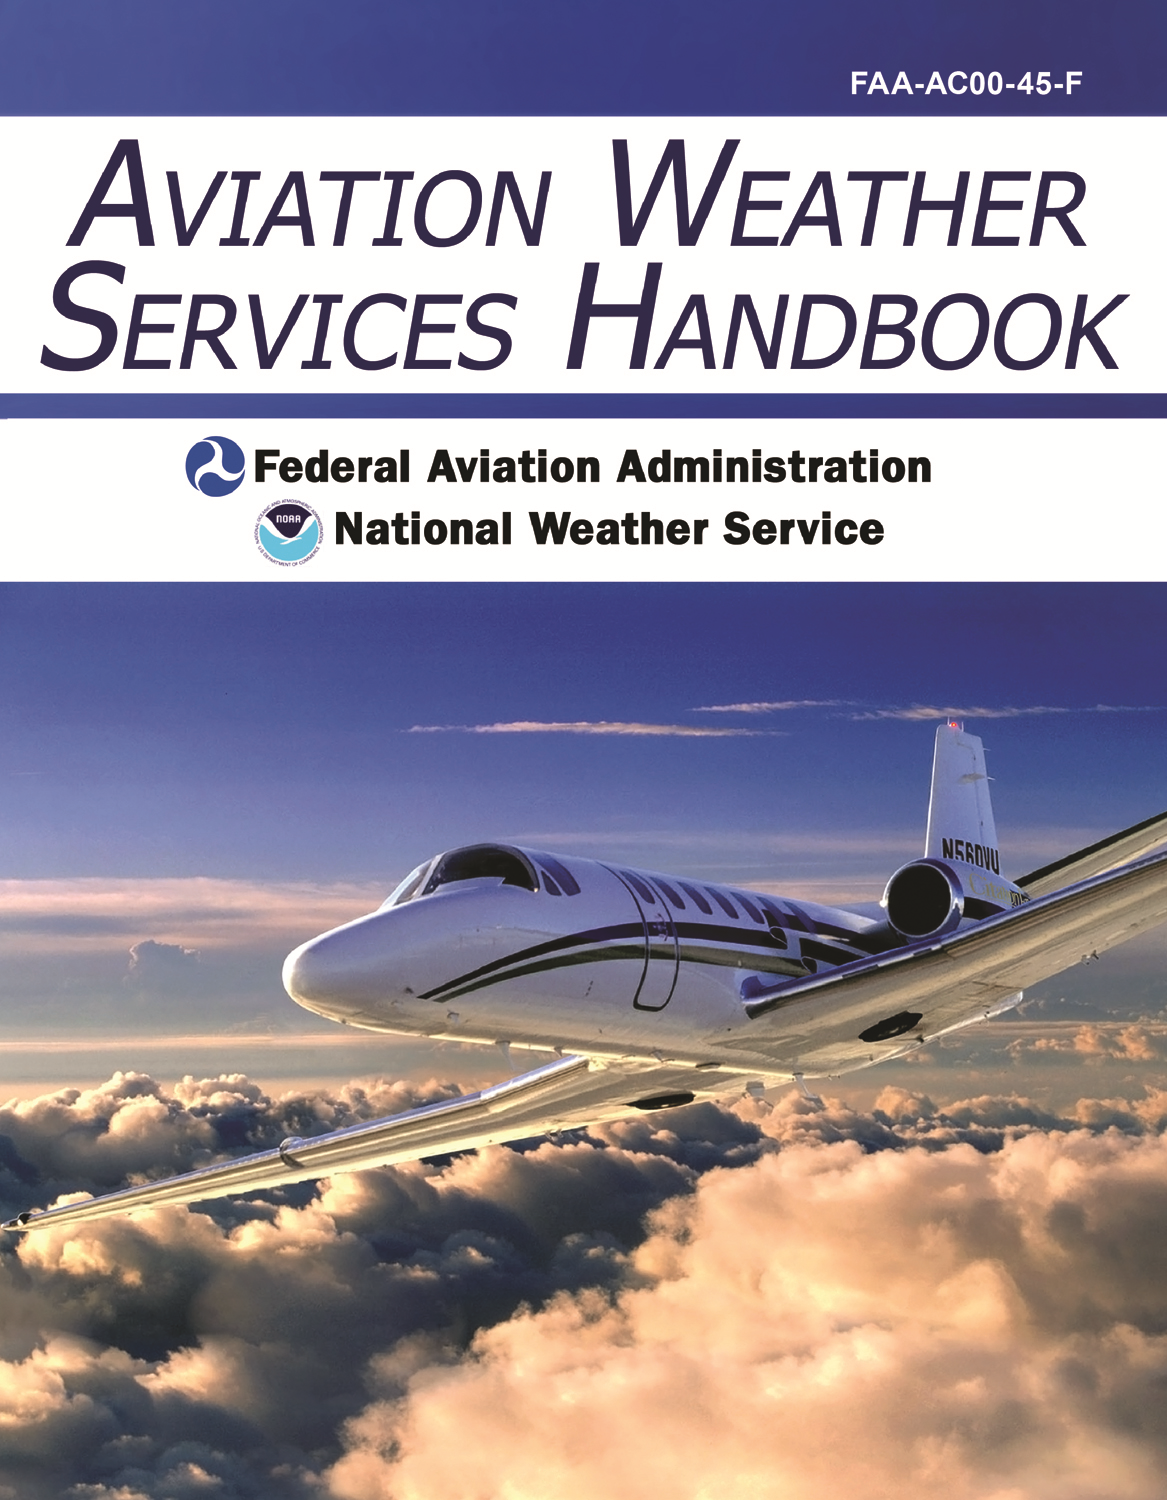 Aviation Weather Services Handbook: FAA-AC00-45-F